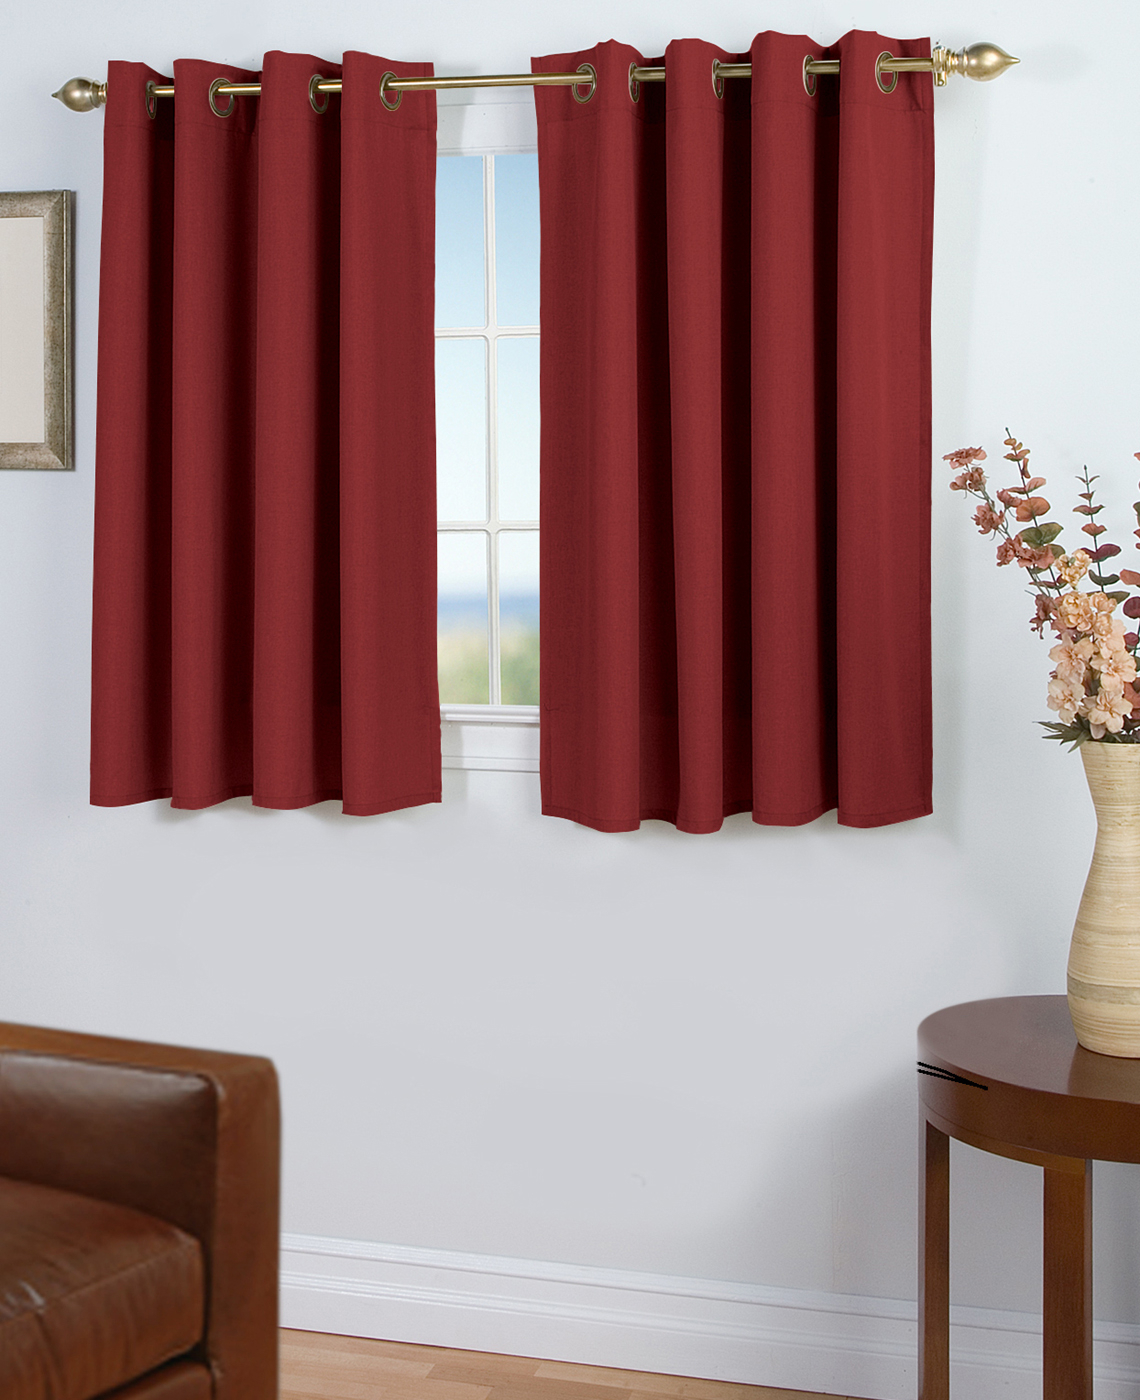 45-Inch Long Curtains - Thecurtainshop throughout Tacoma Double-Blackout Grommet Curtain Panels (Image 2 of 30)